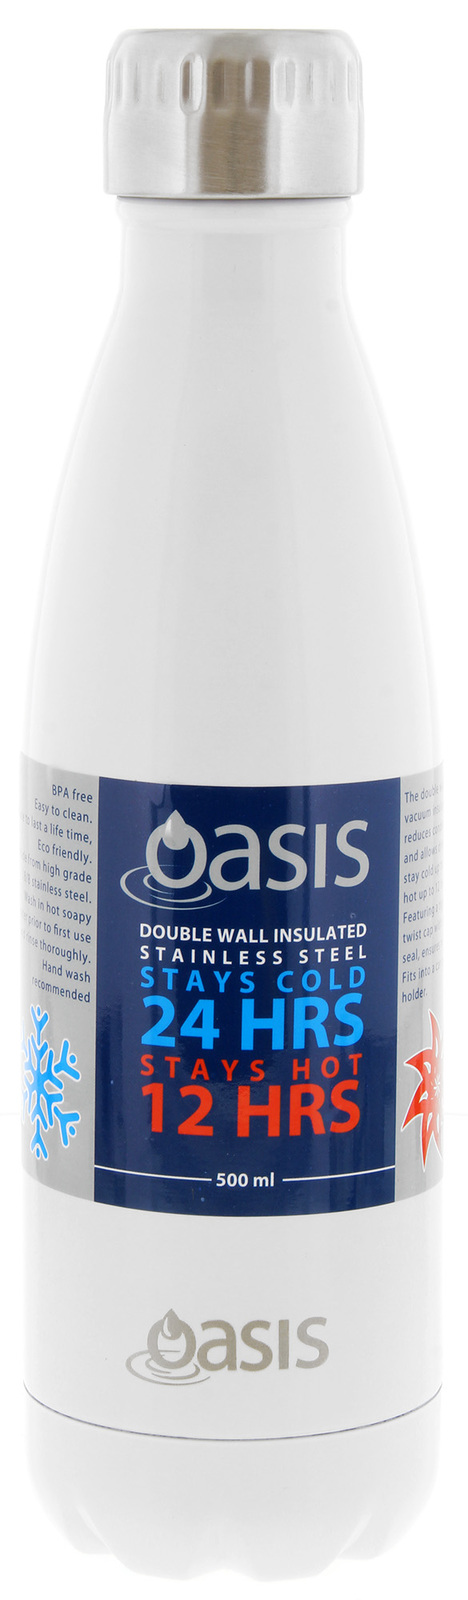 Oasis Insulated Stainless Steel Water Bottle - White (500ml) image